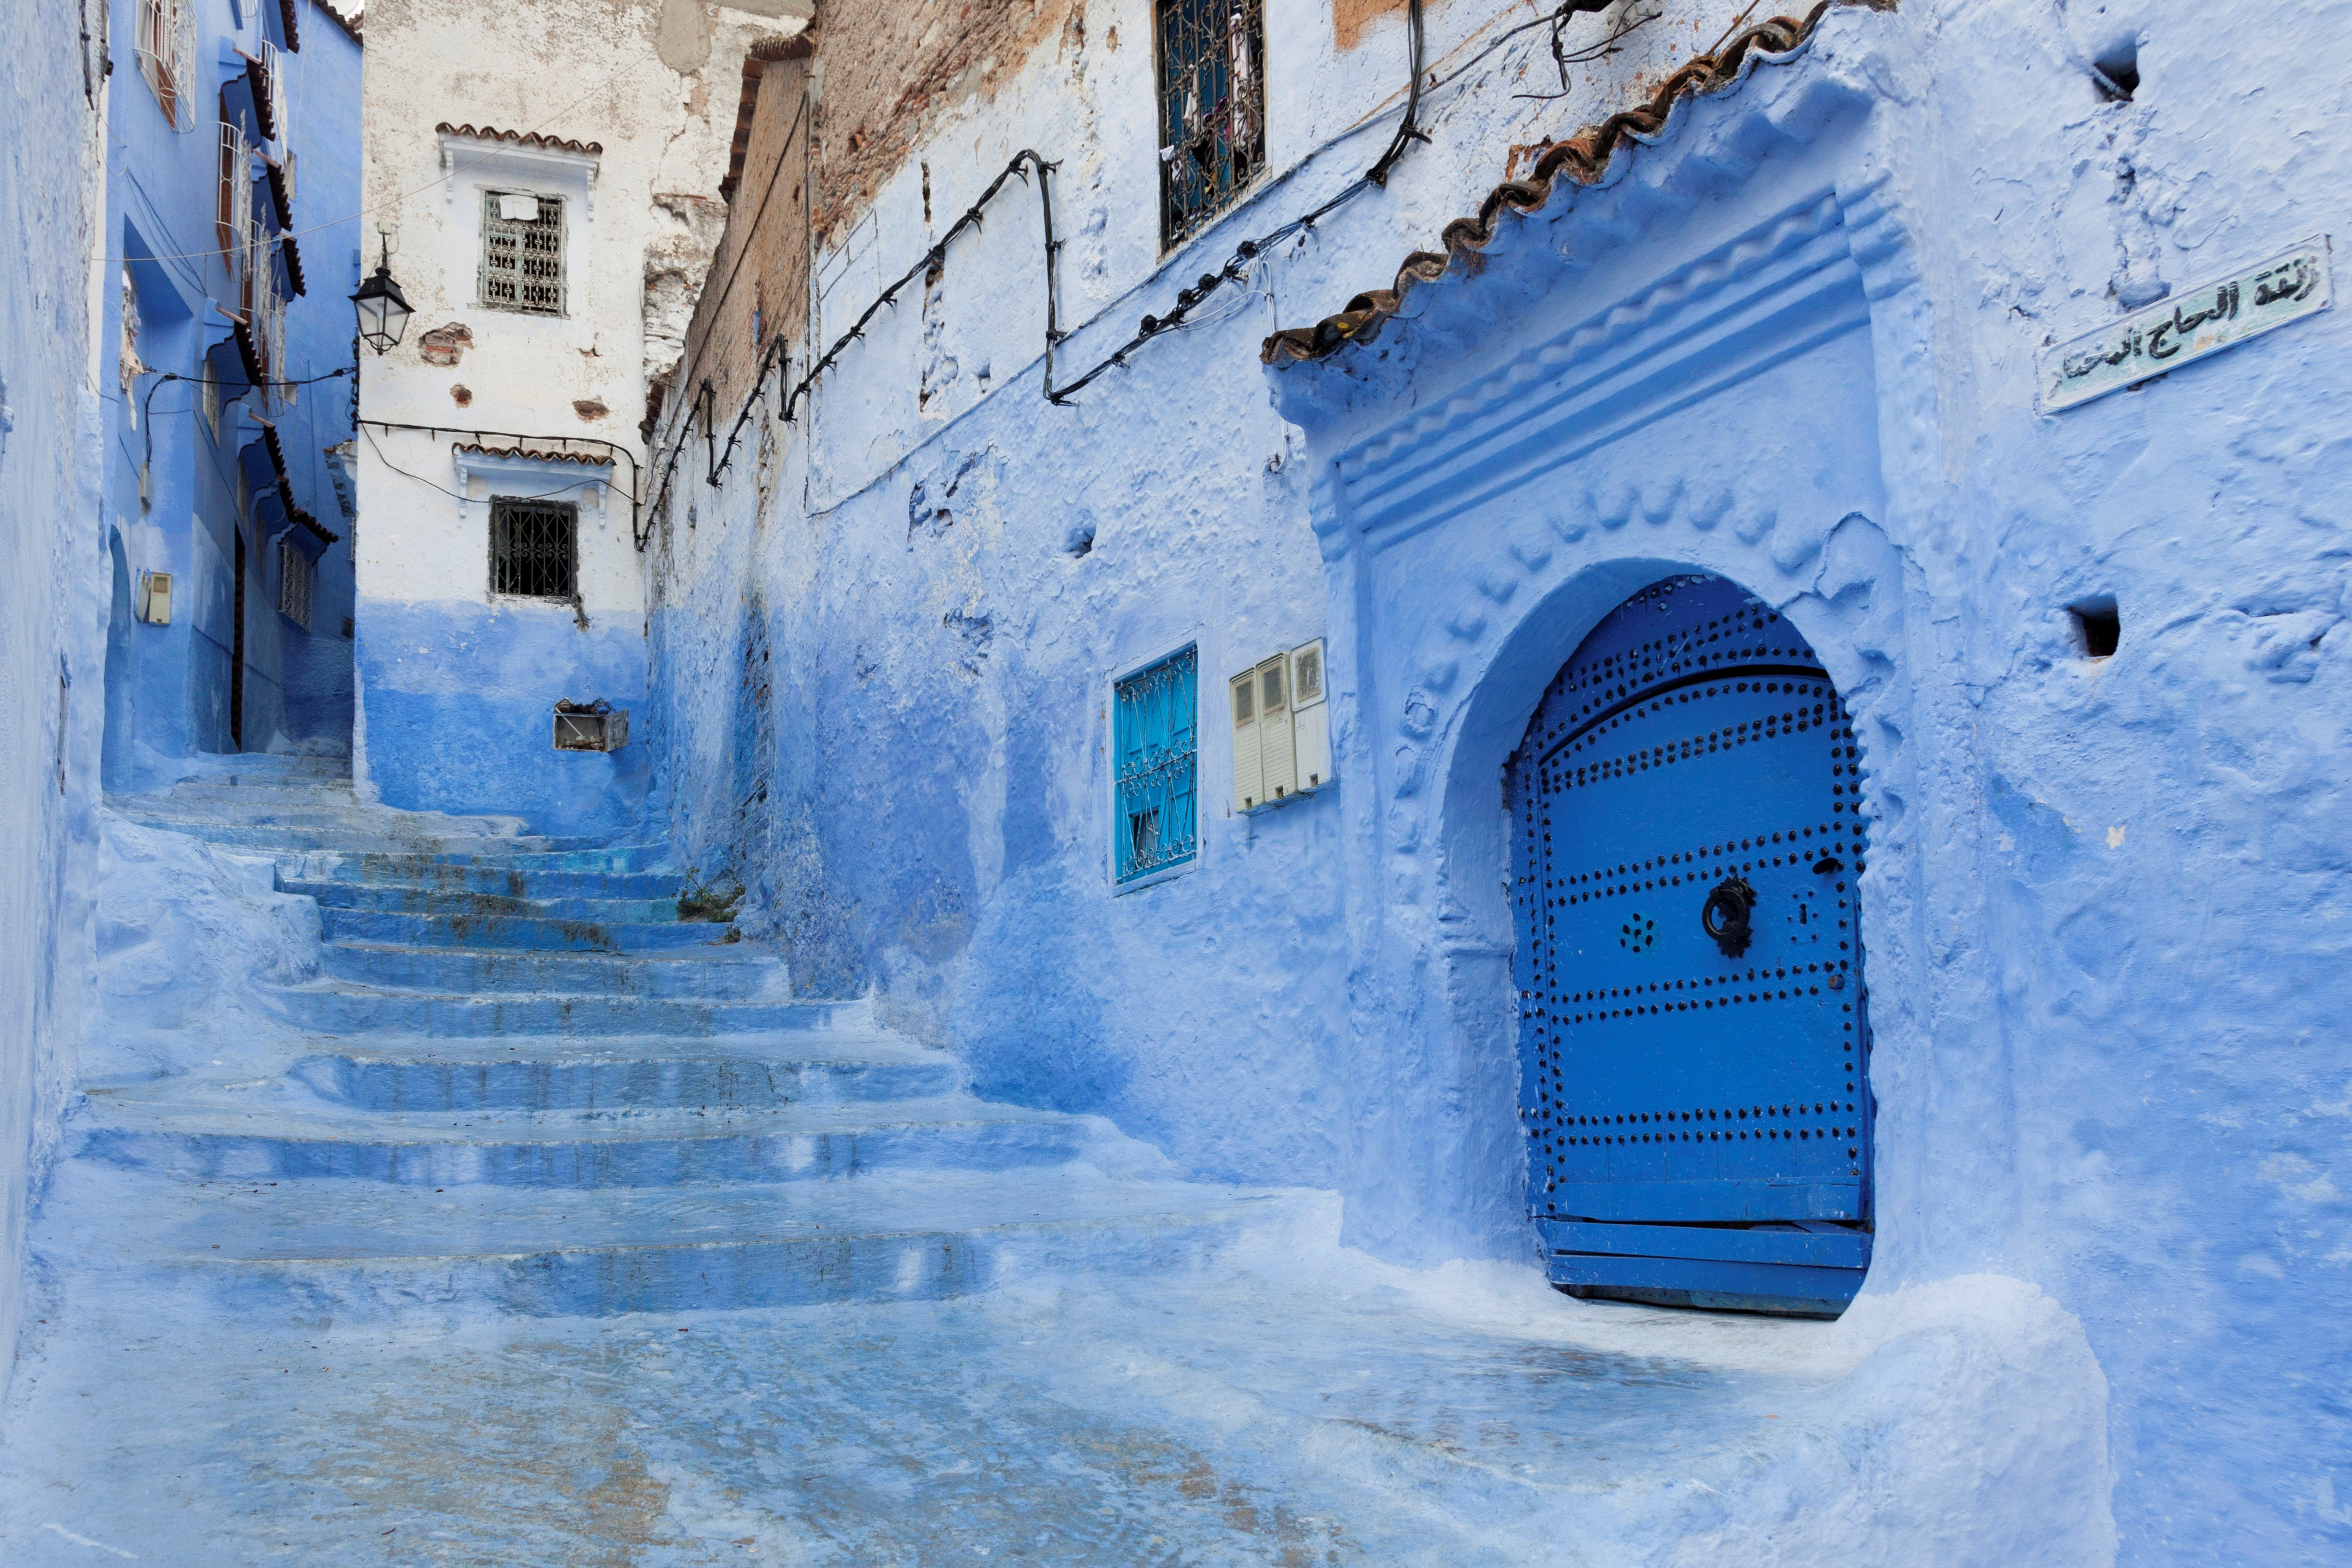 Travel to CHEFCHAOUEN05.jpg